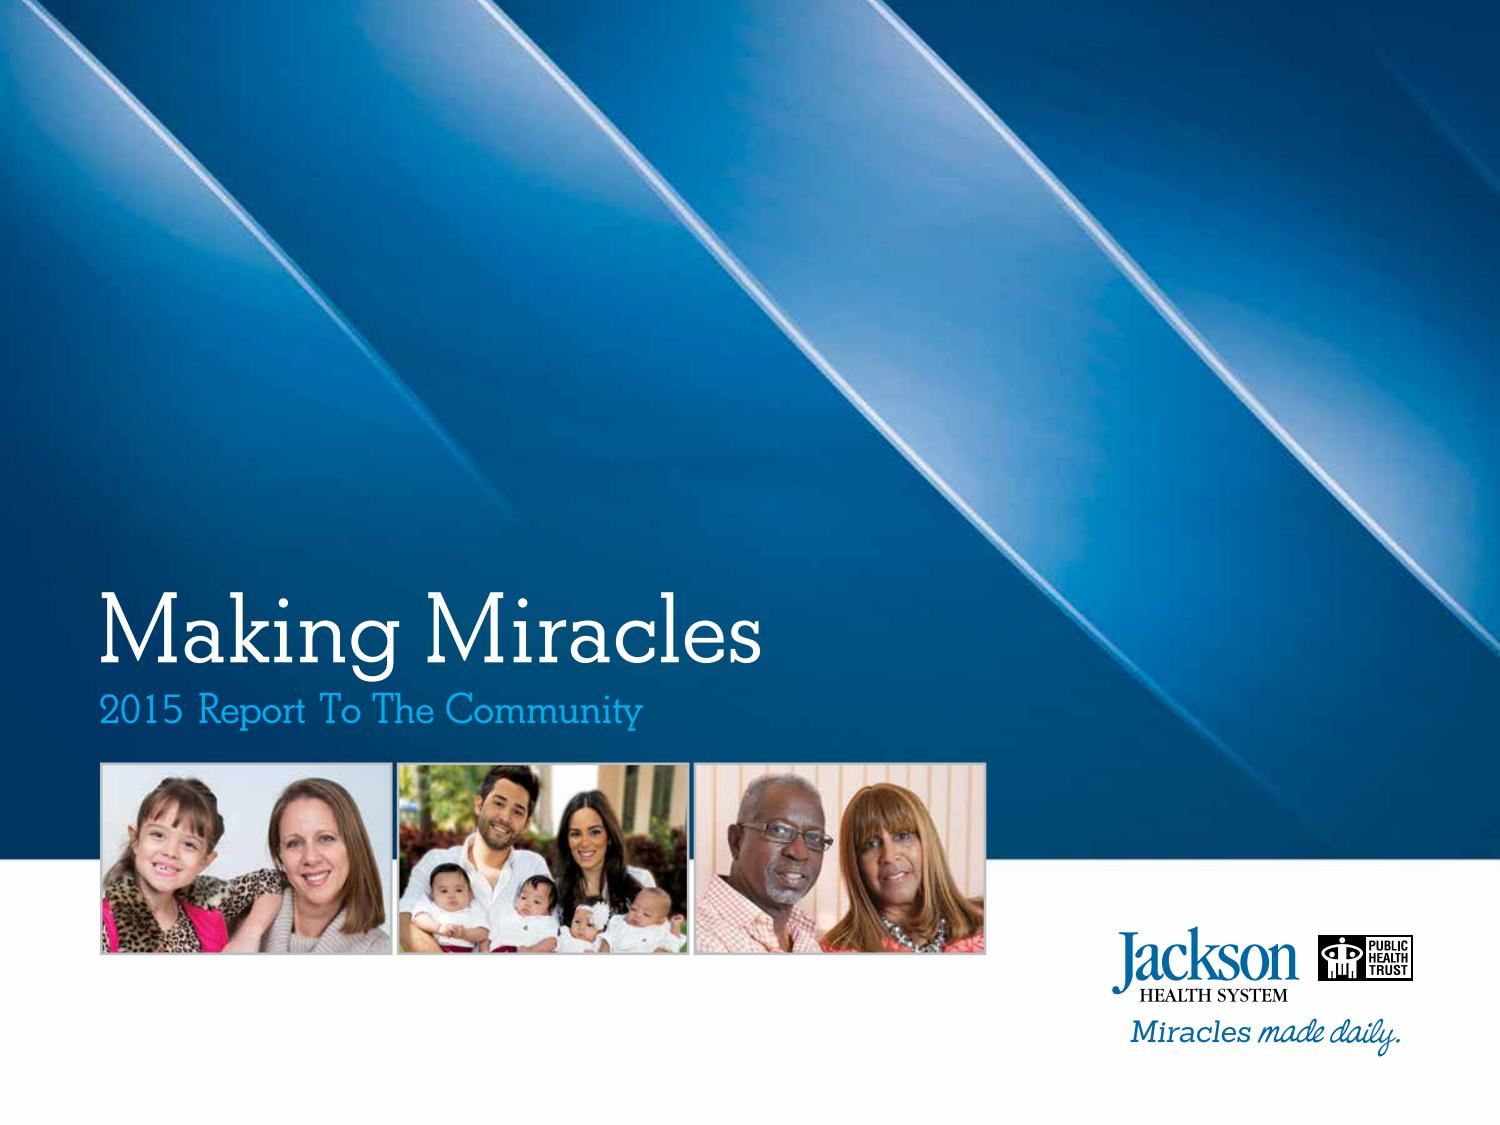 Jackson Health System 2015 Report To The Community By